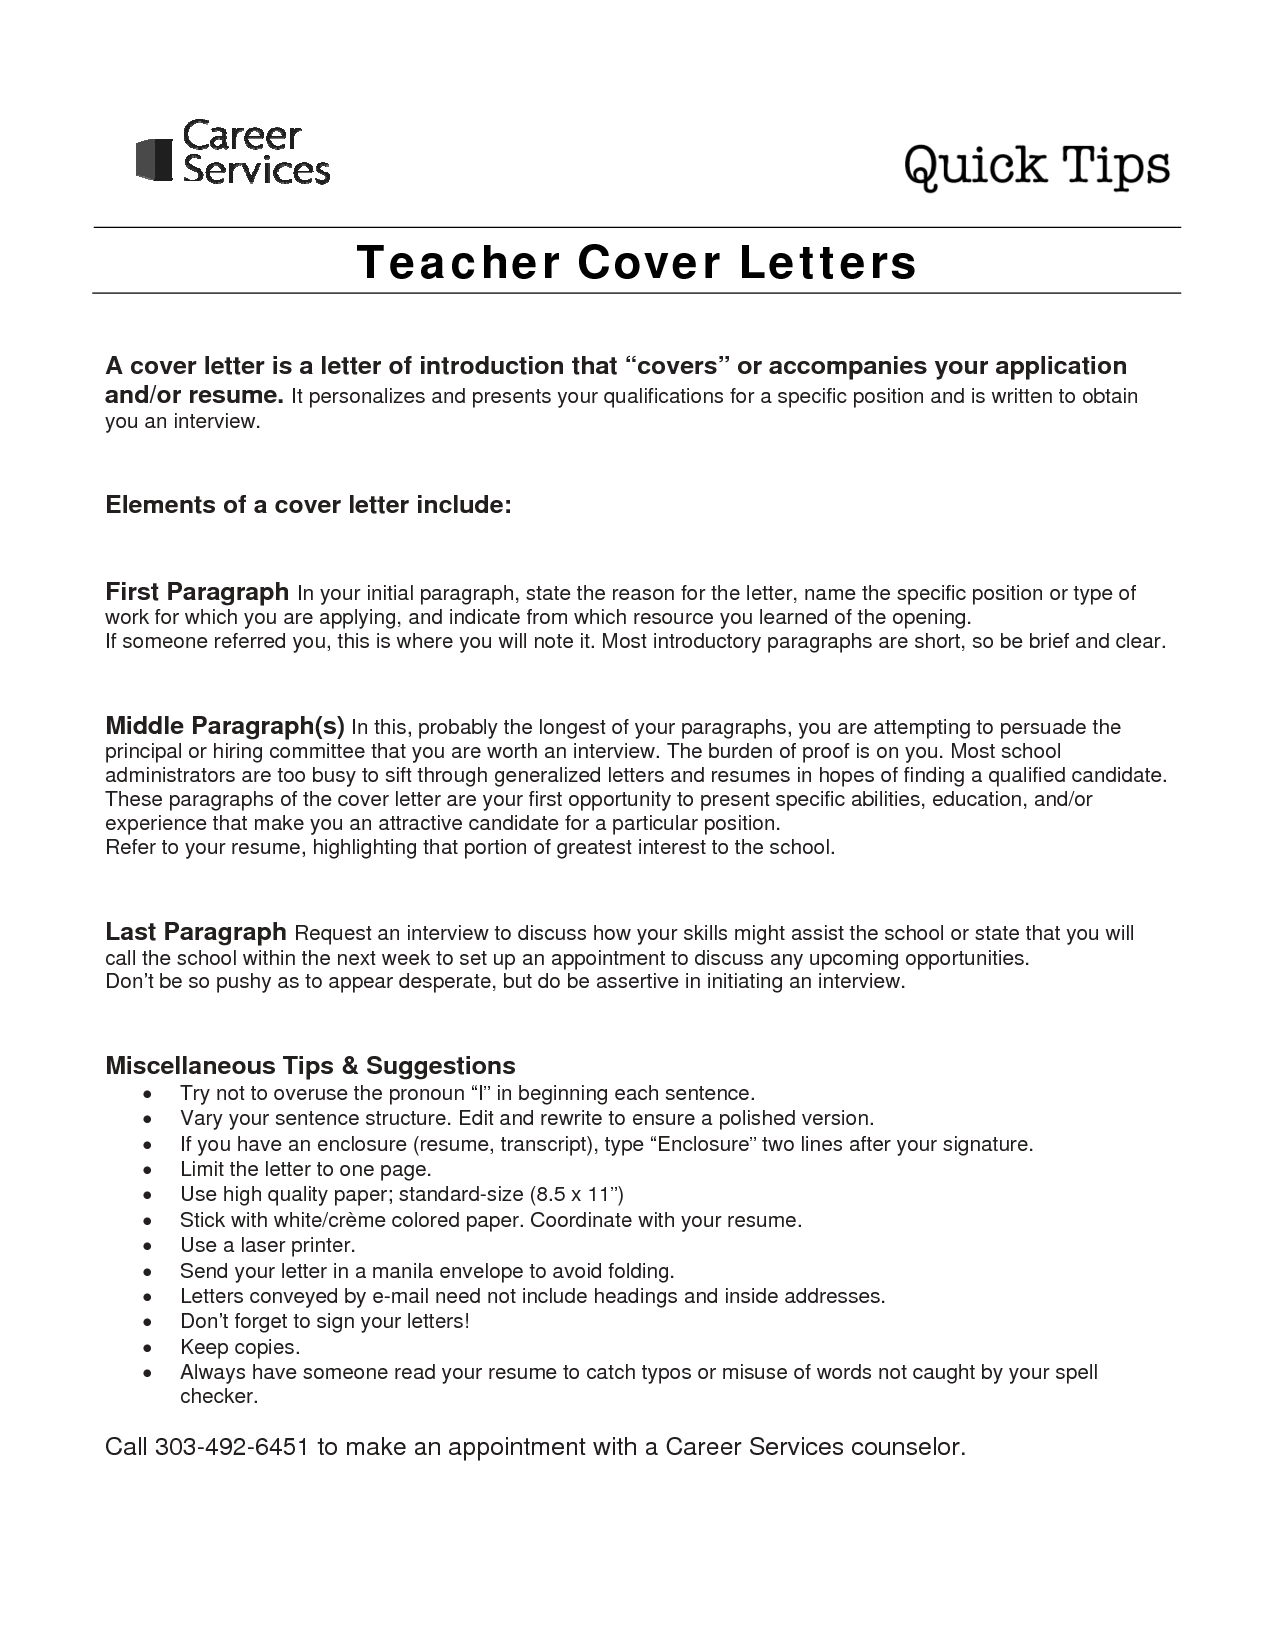 letter samples cover mistakes faq about builder teachers resume template for sample inside teaching best free home design idea inspiration - Copy Of Cover Letter For Resume